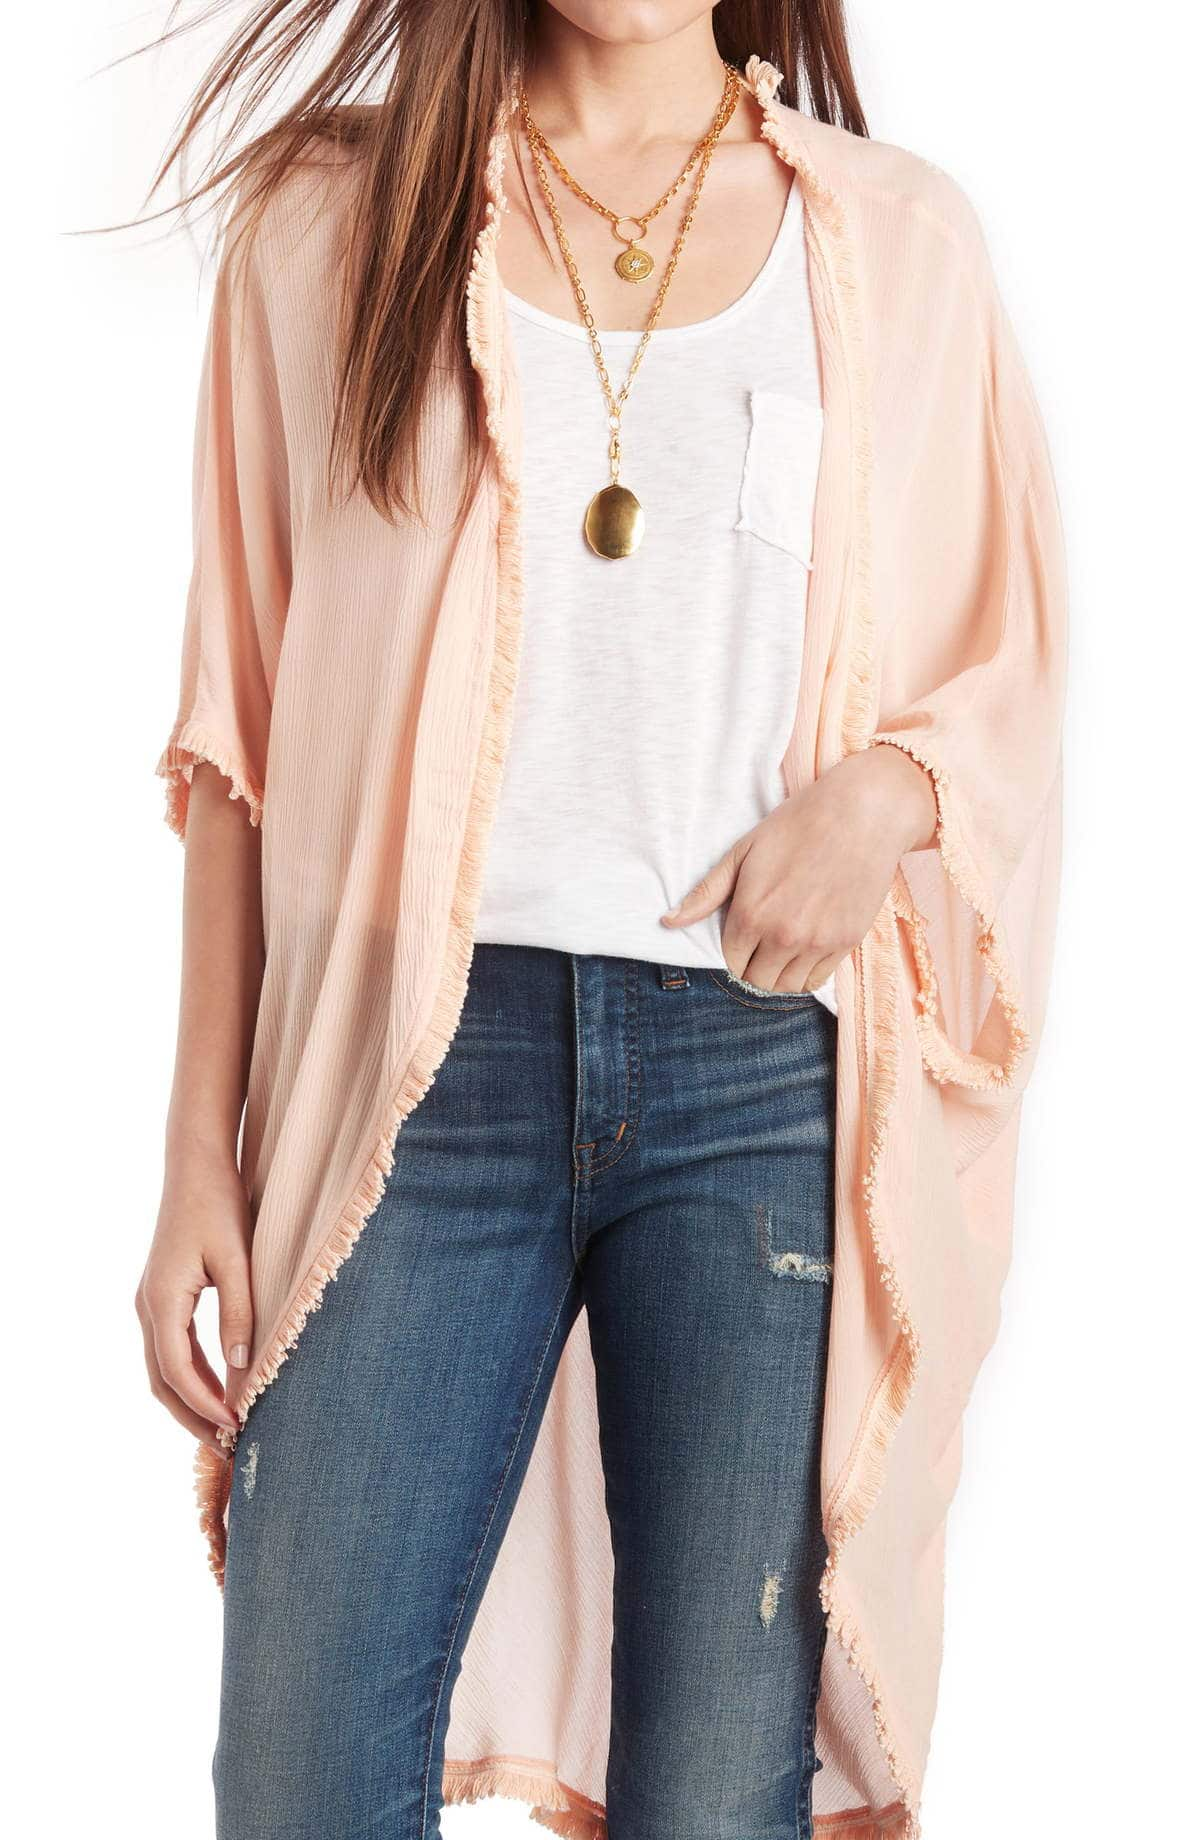 hottest summer trends from Nordstrom